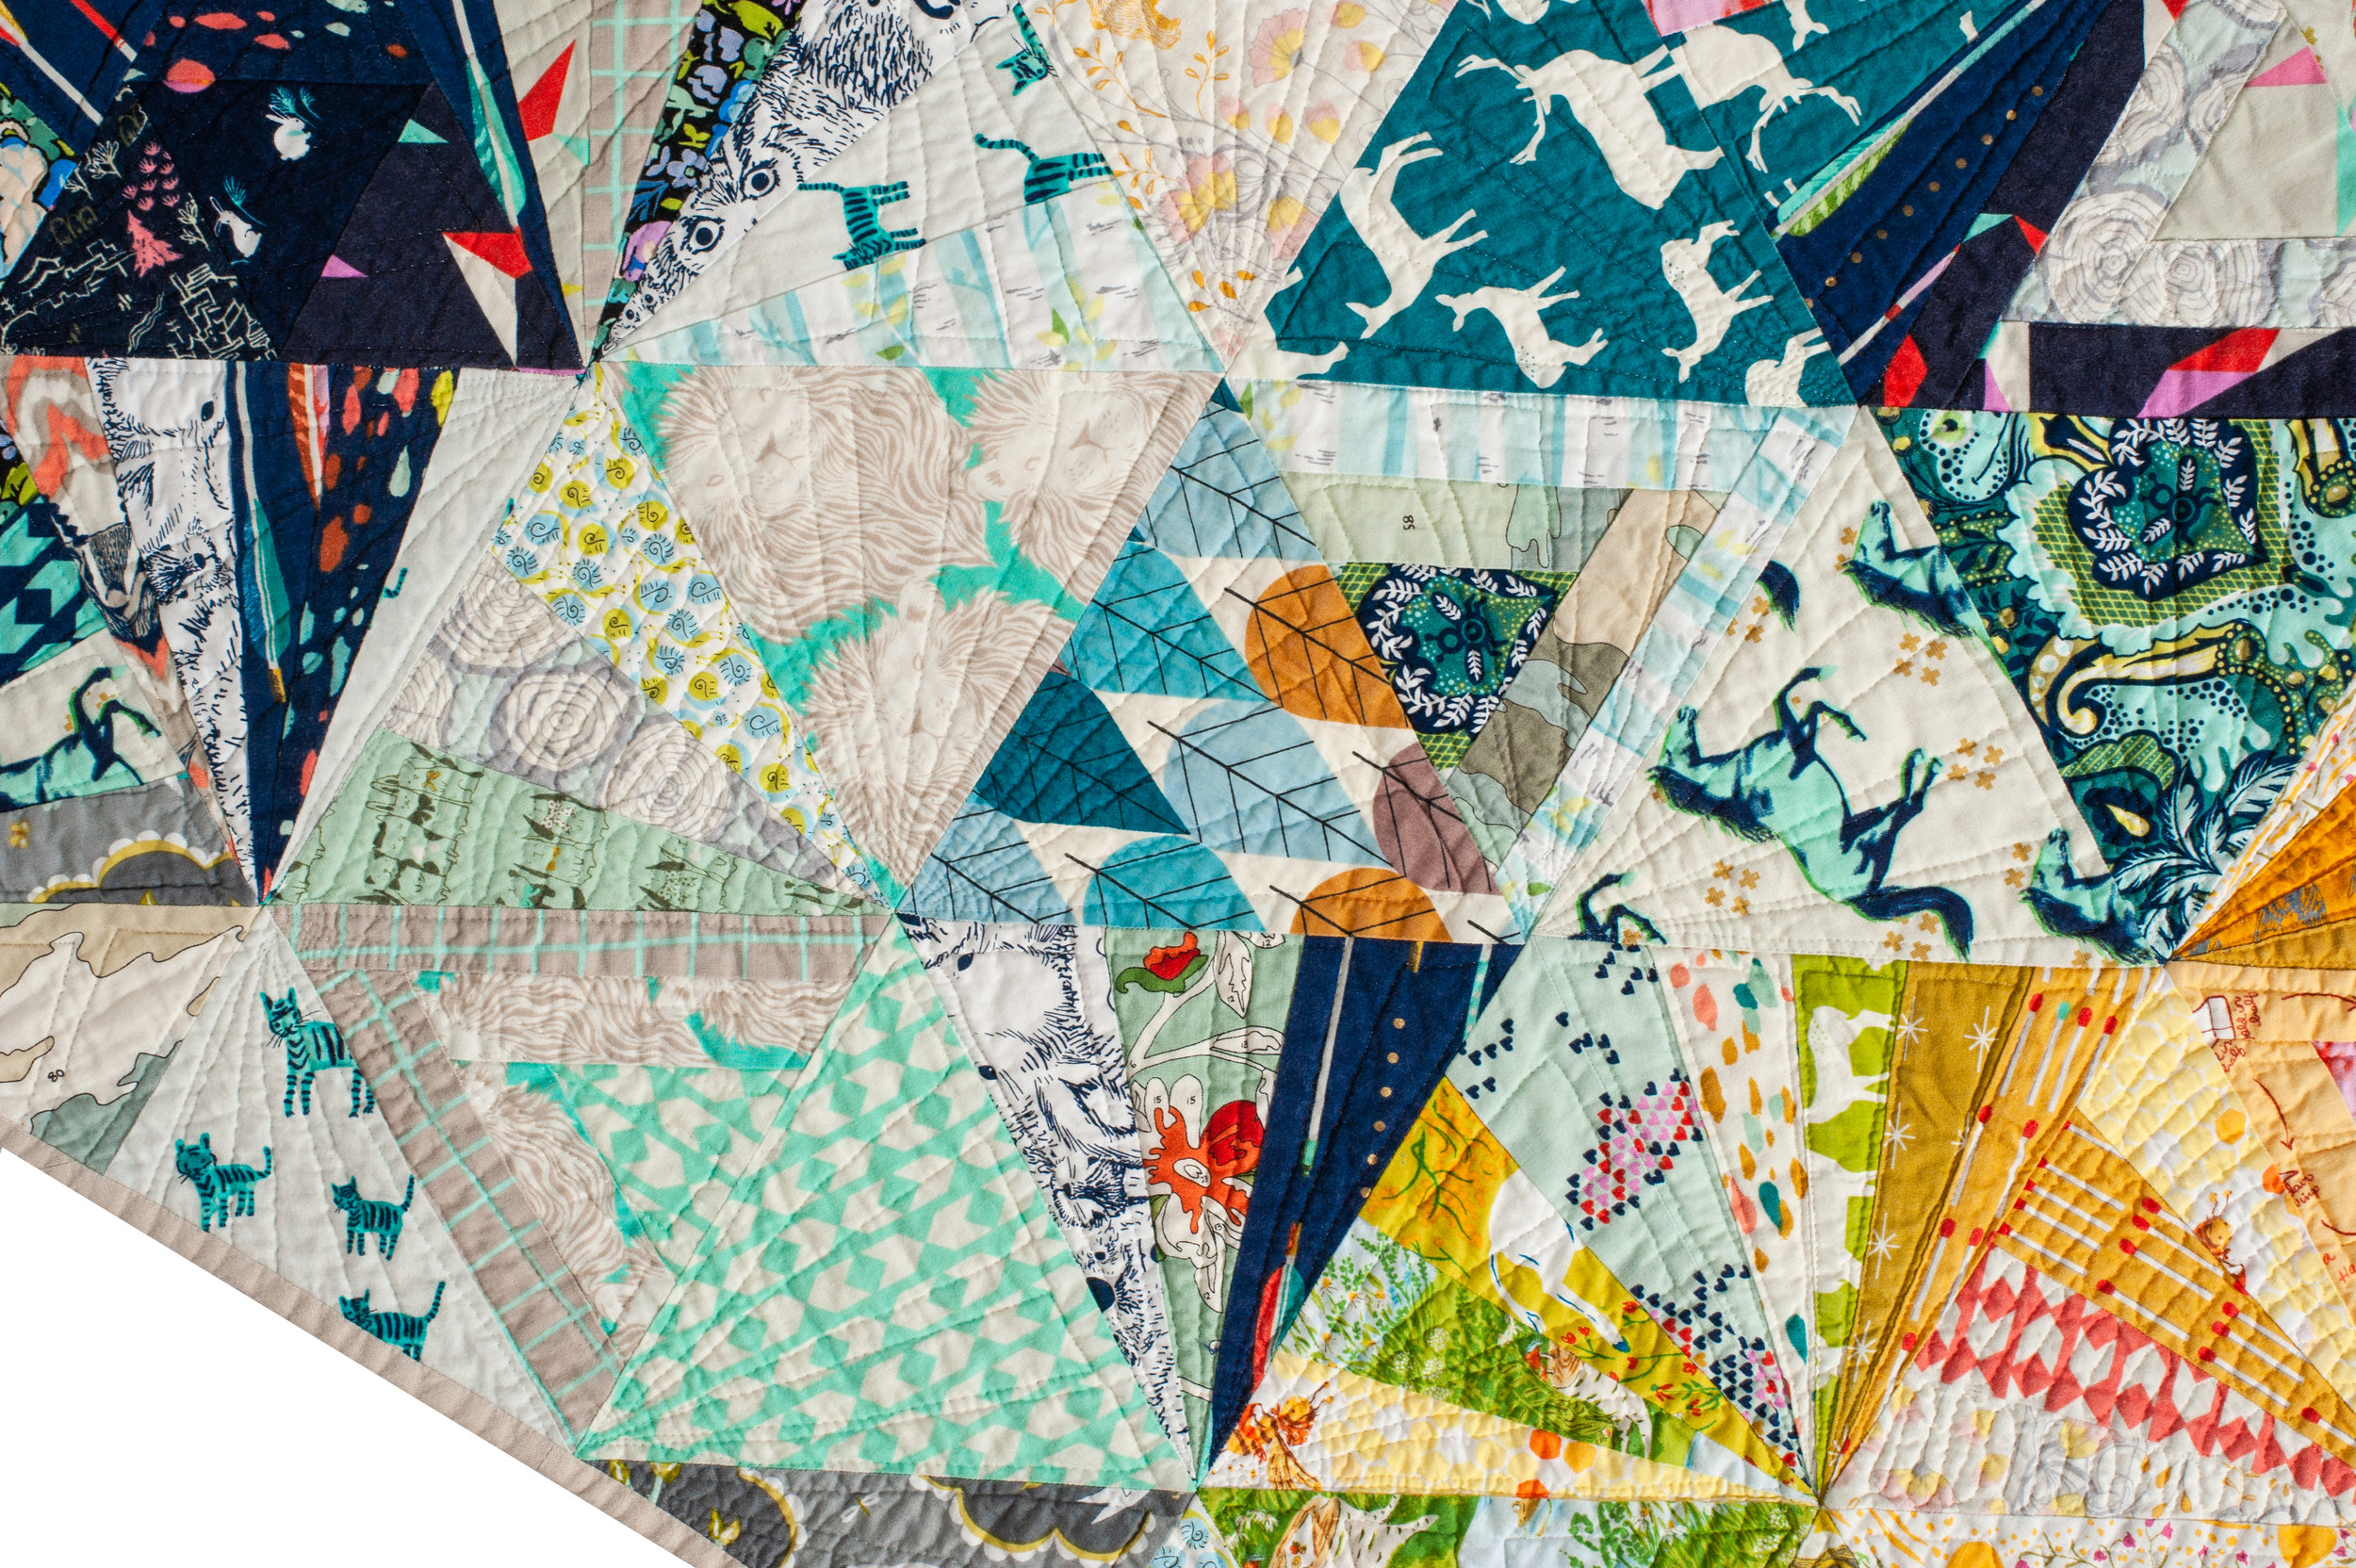 Eschbaugh_Meghan_Quilt_1 (2 of 8).jpg